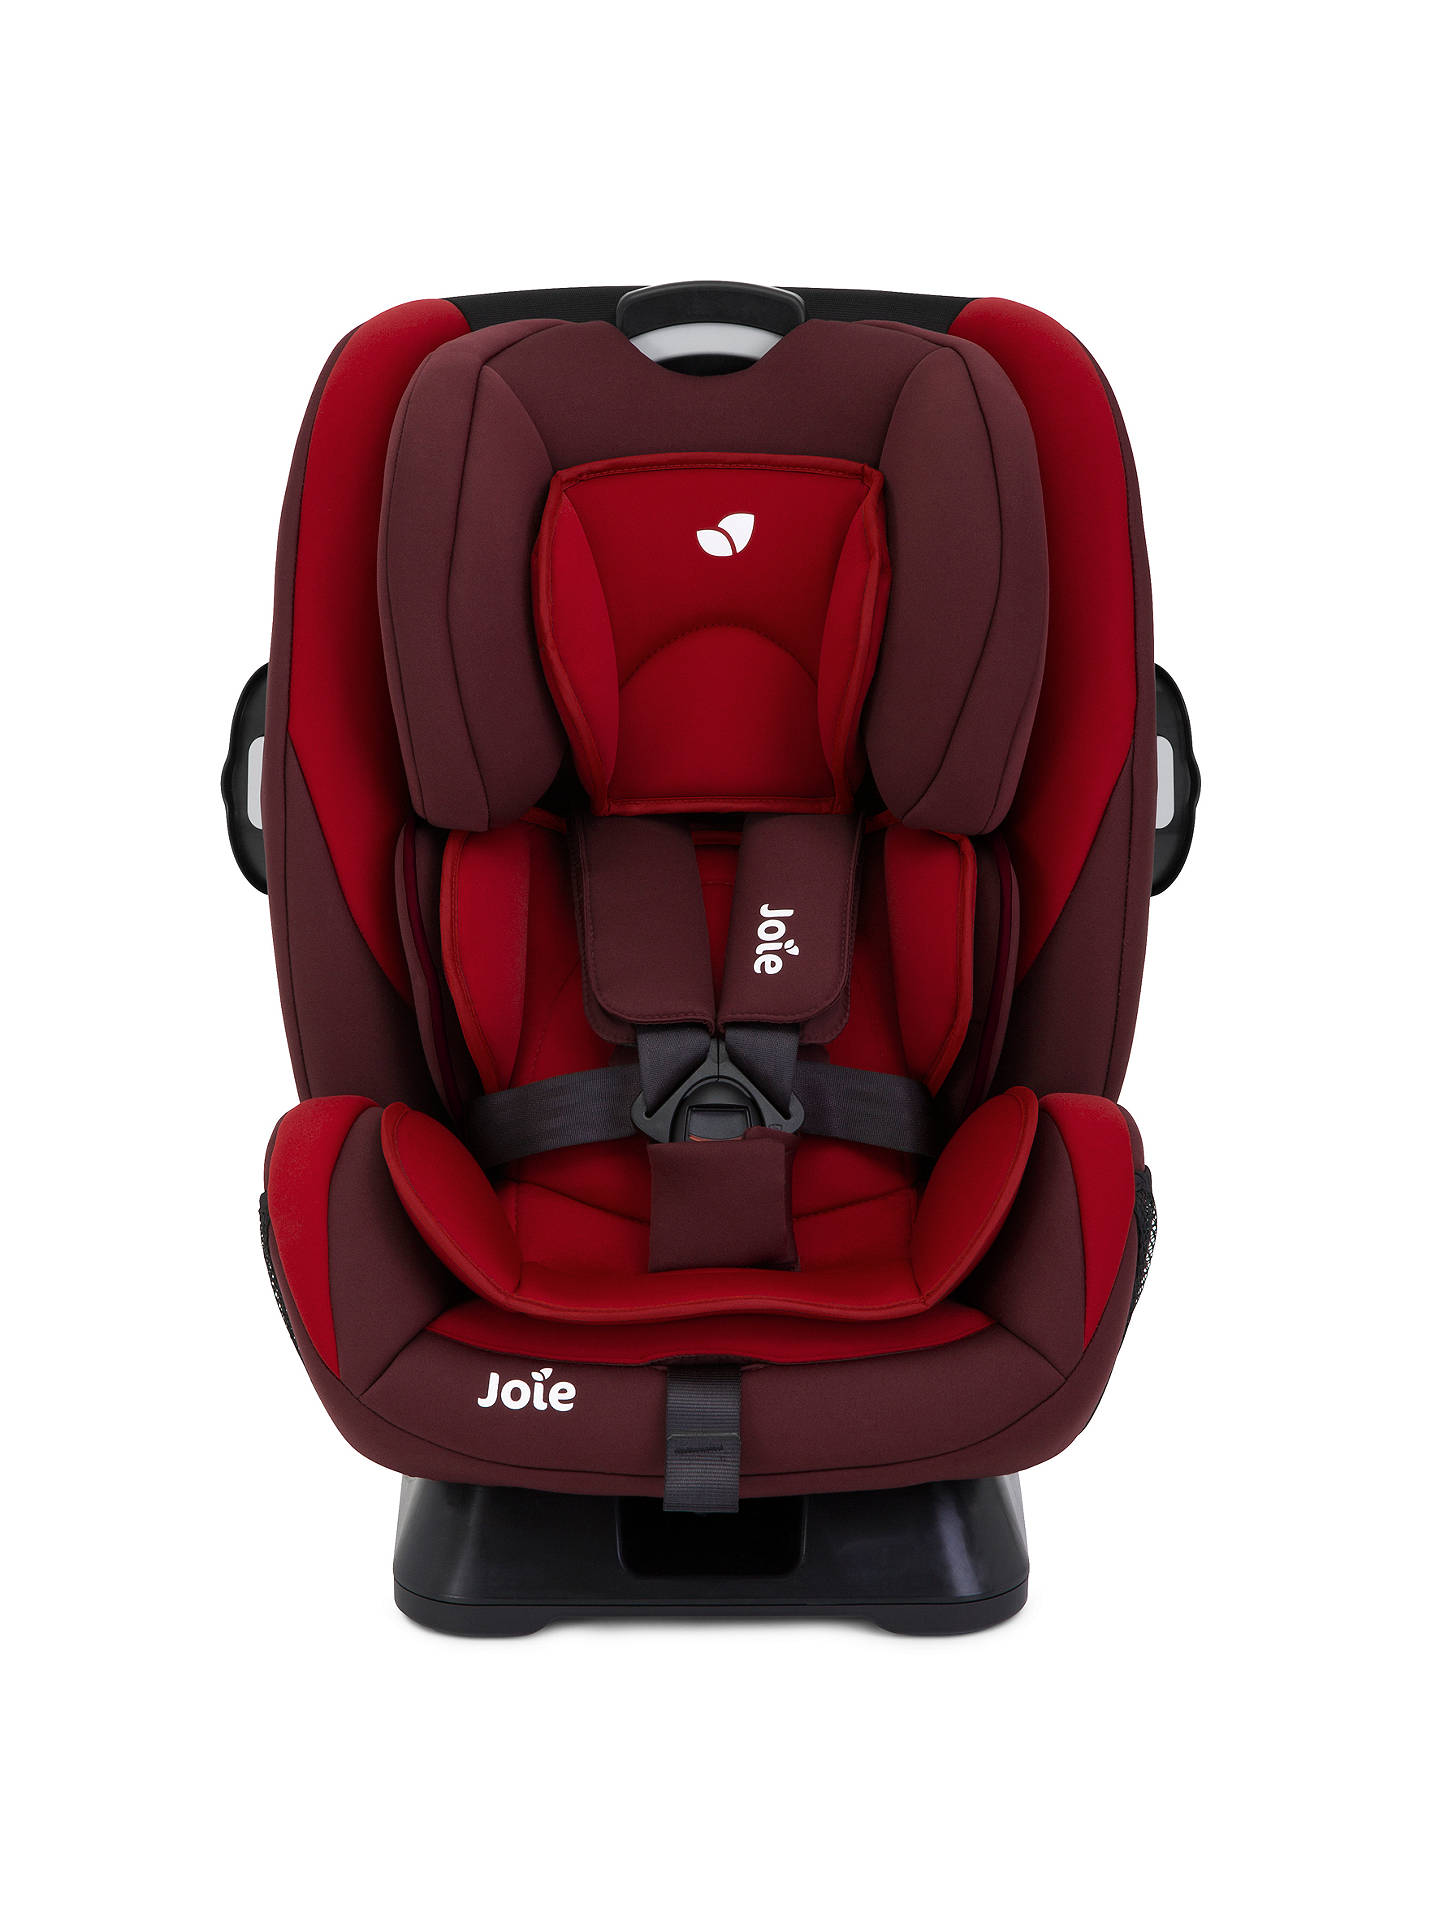 Joie Baby Every Stage Group 0+/1/2/3 Car Seat, Red at John ...